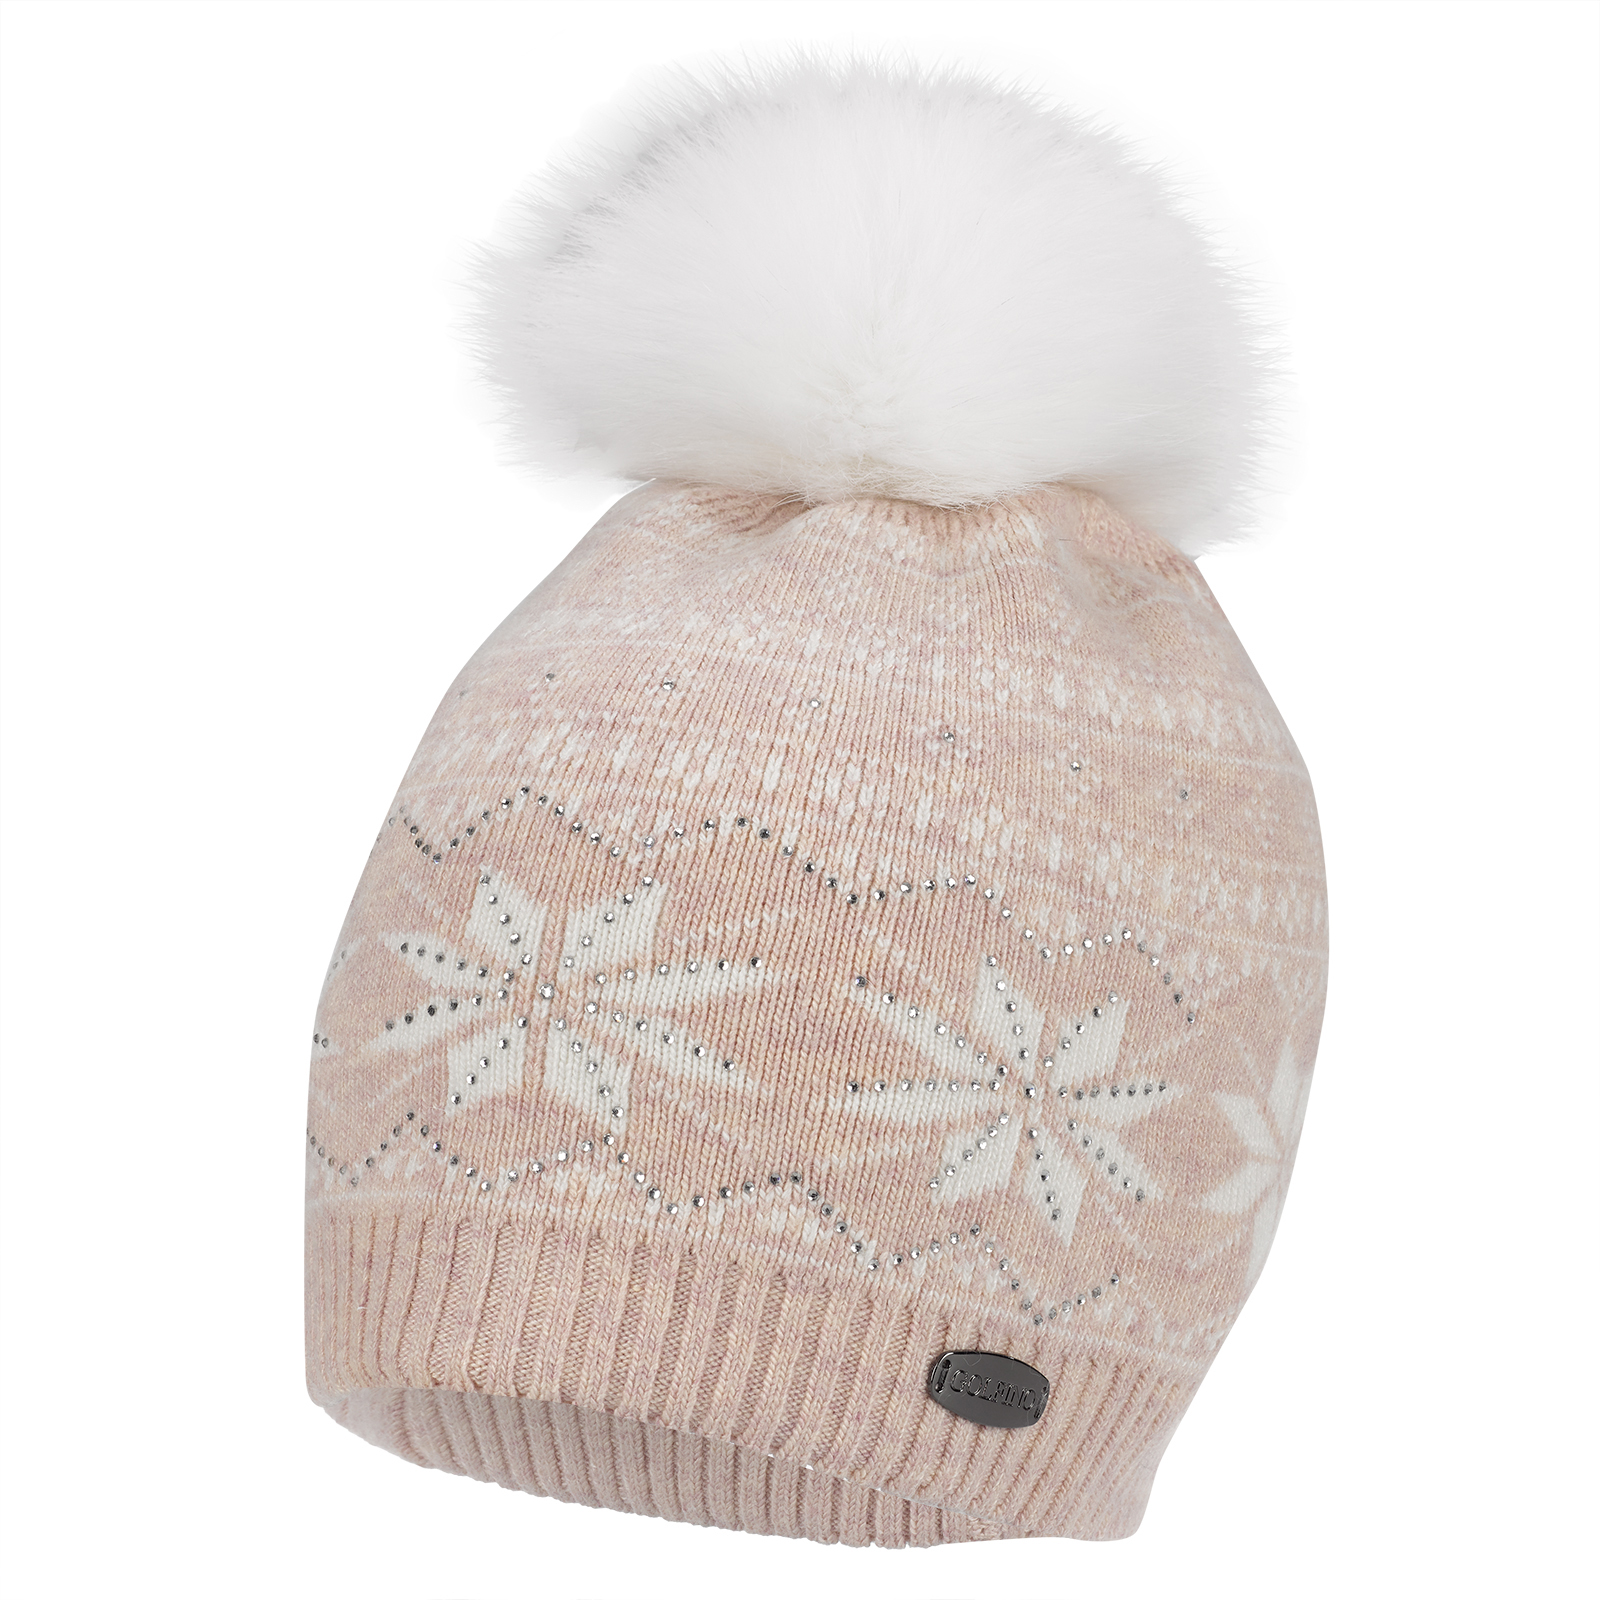 Ladies' knitted hat with classic winter pattern and real fur pompom